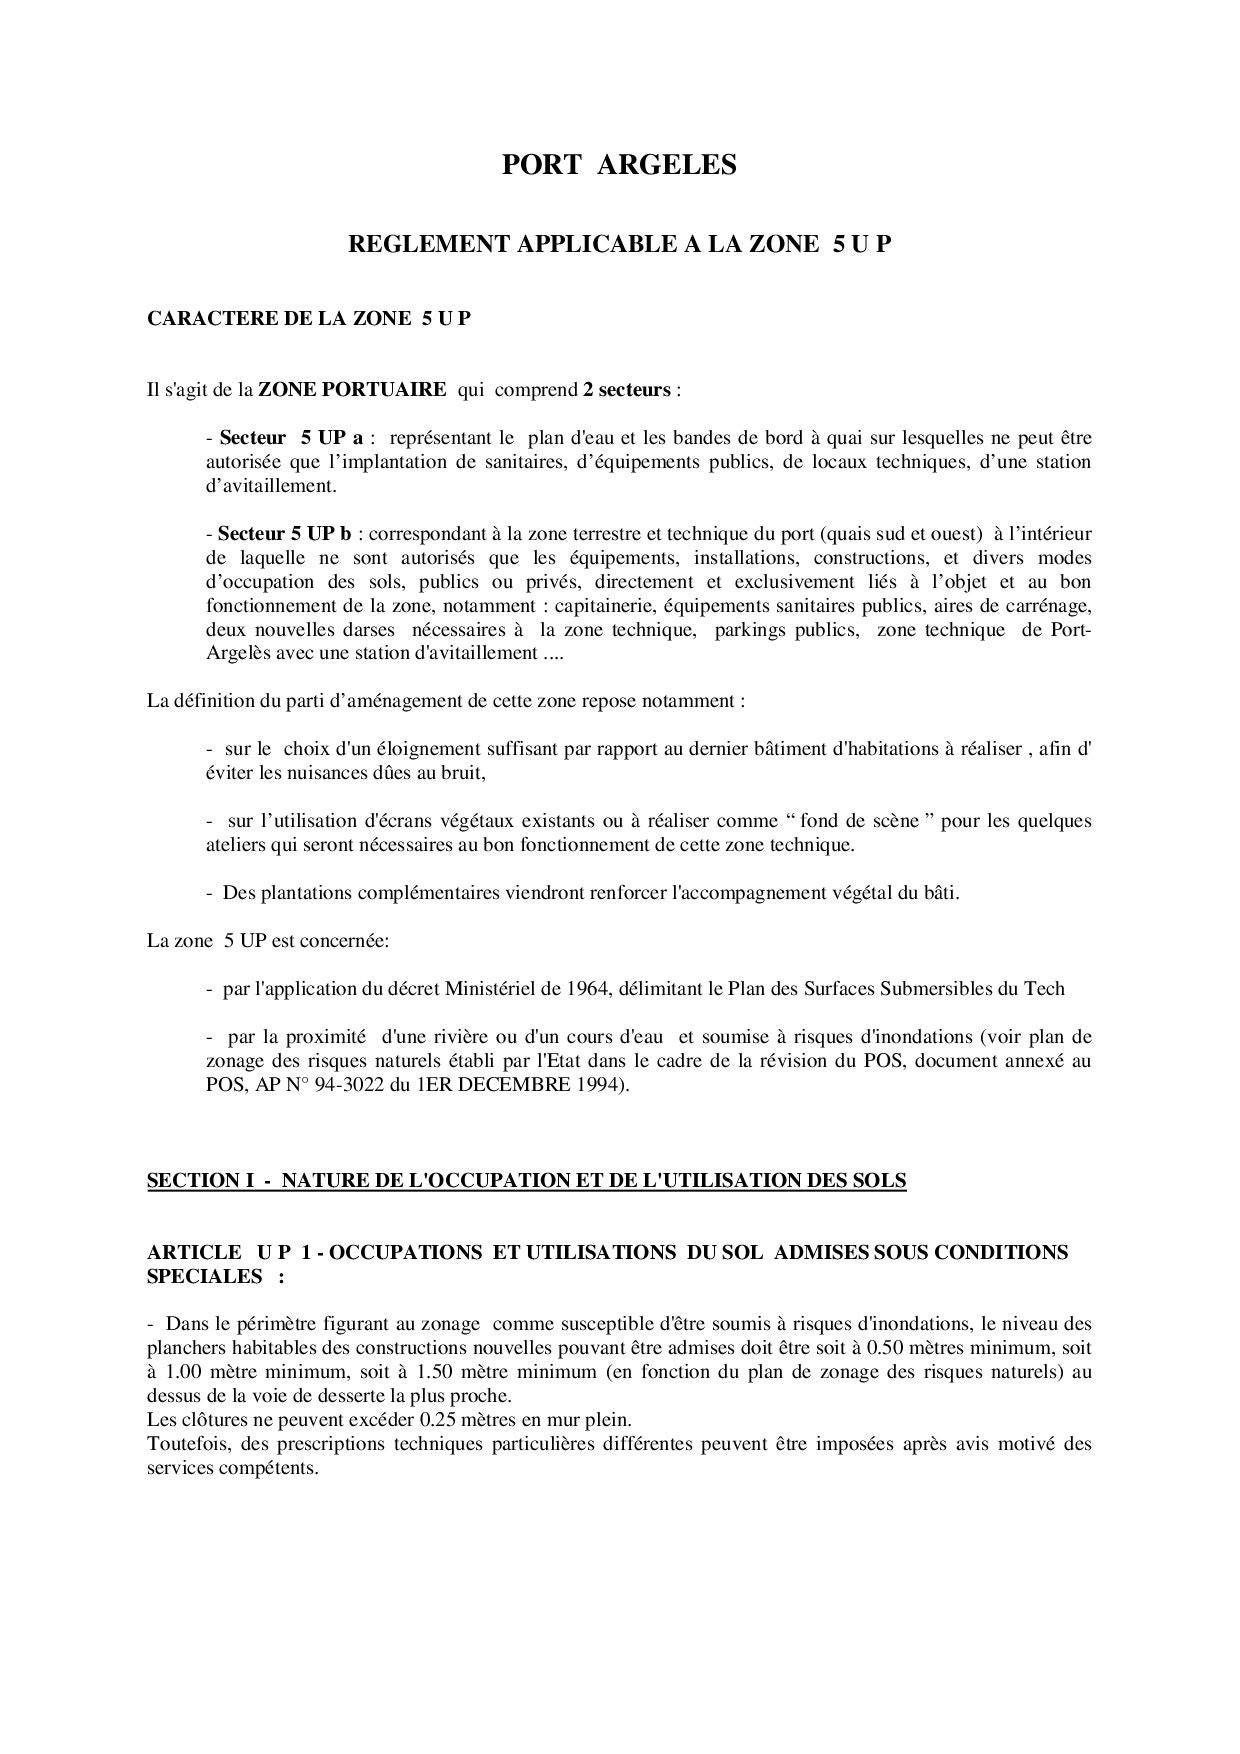 R glement du pos zone 5 up by argel s sur mer issuu for Definition du reglement interieur